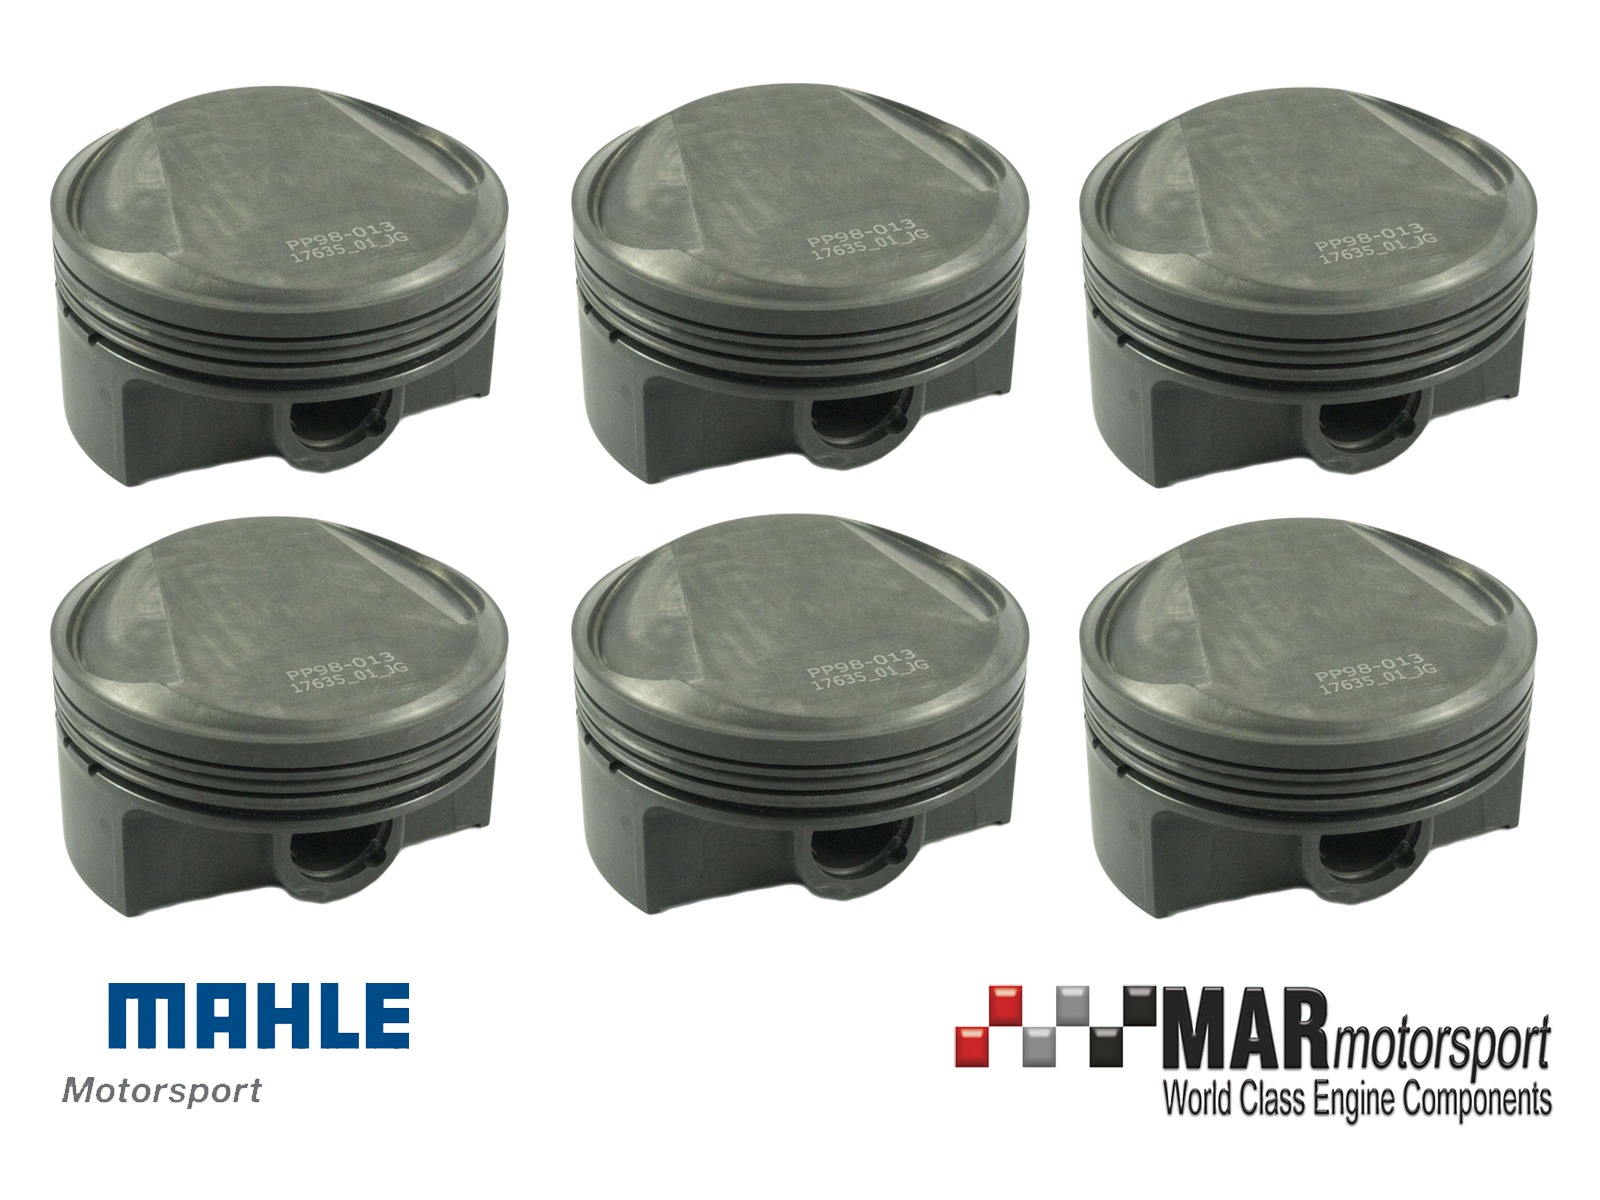 98mm Forged mahle porsche pistons